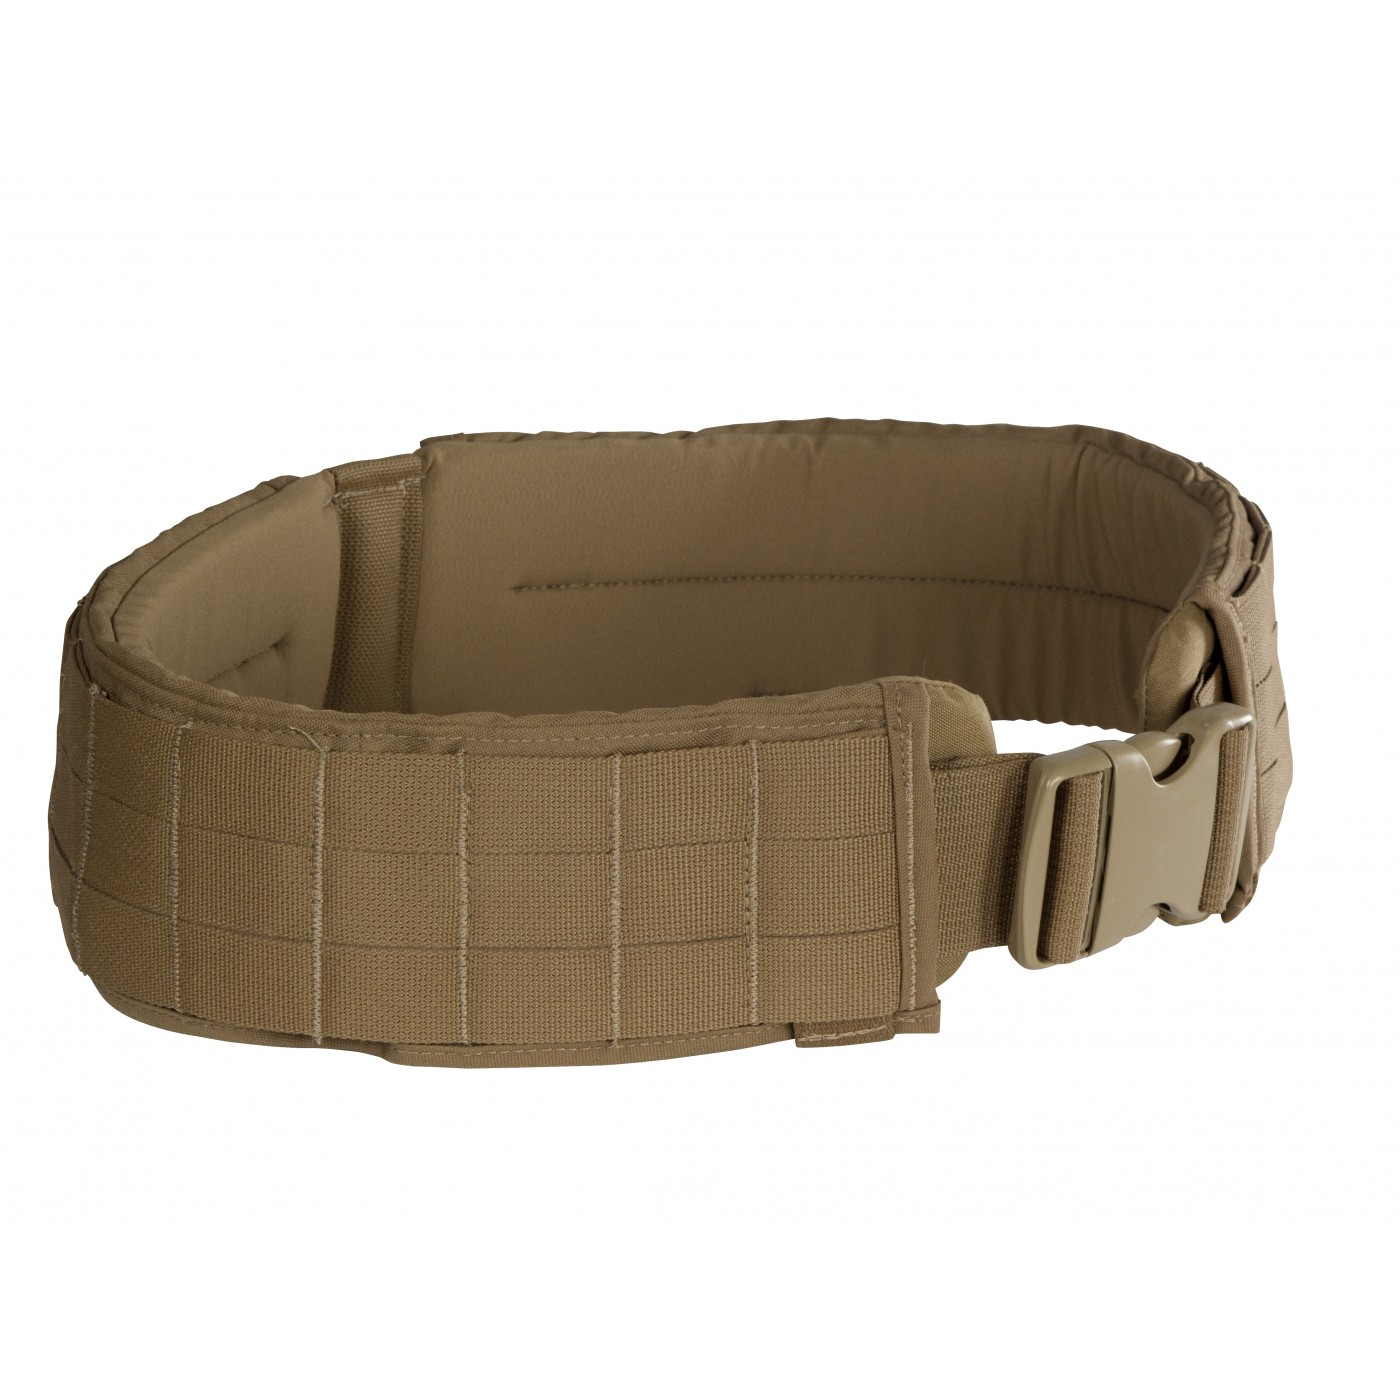 Granite Tactical Gear Padded Patrol Belt Ebay